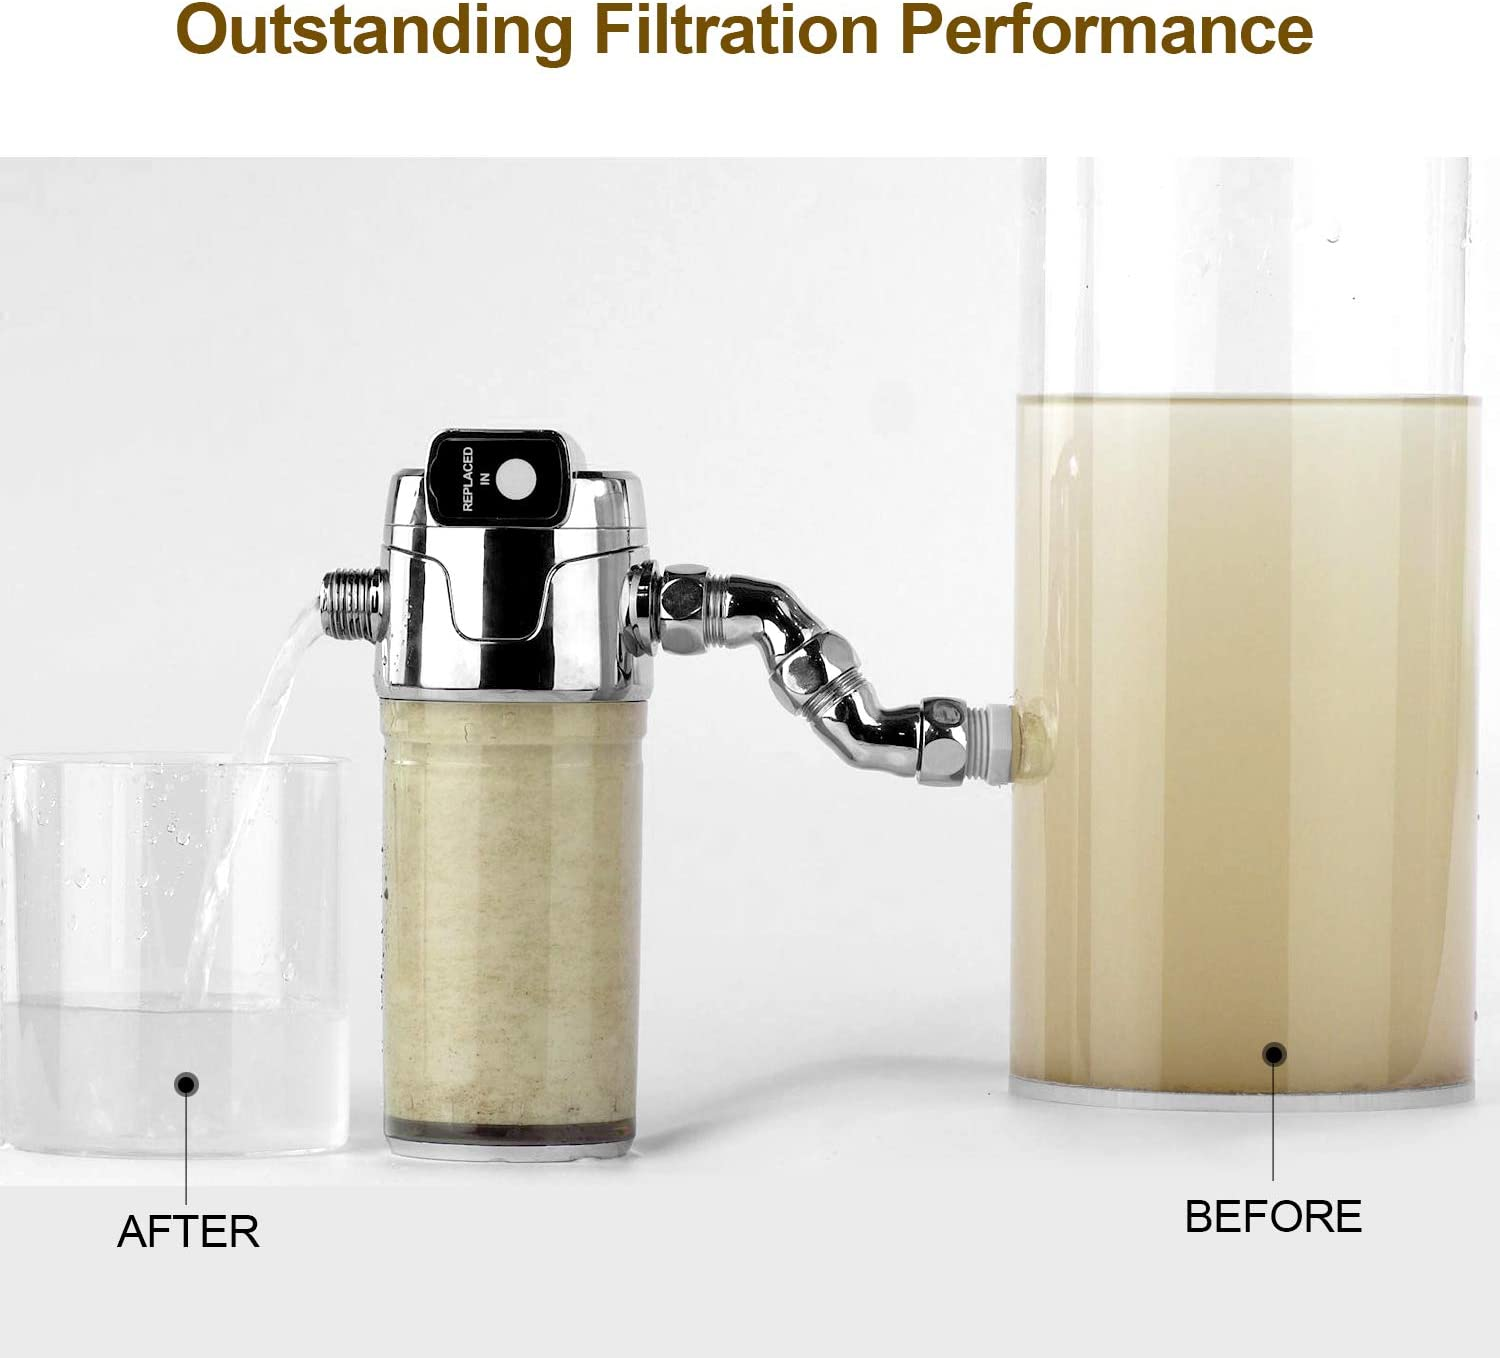 Miniwell Luxury Shower Water Filter with Digital Screen and Replaceable Cartridges Remove 99/% Chlorine Shower Head Filter with Double Filters White Color Shower Filter